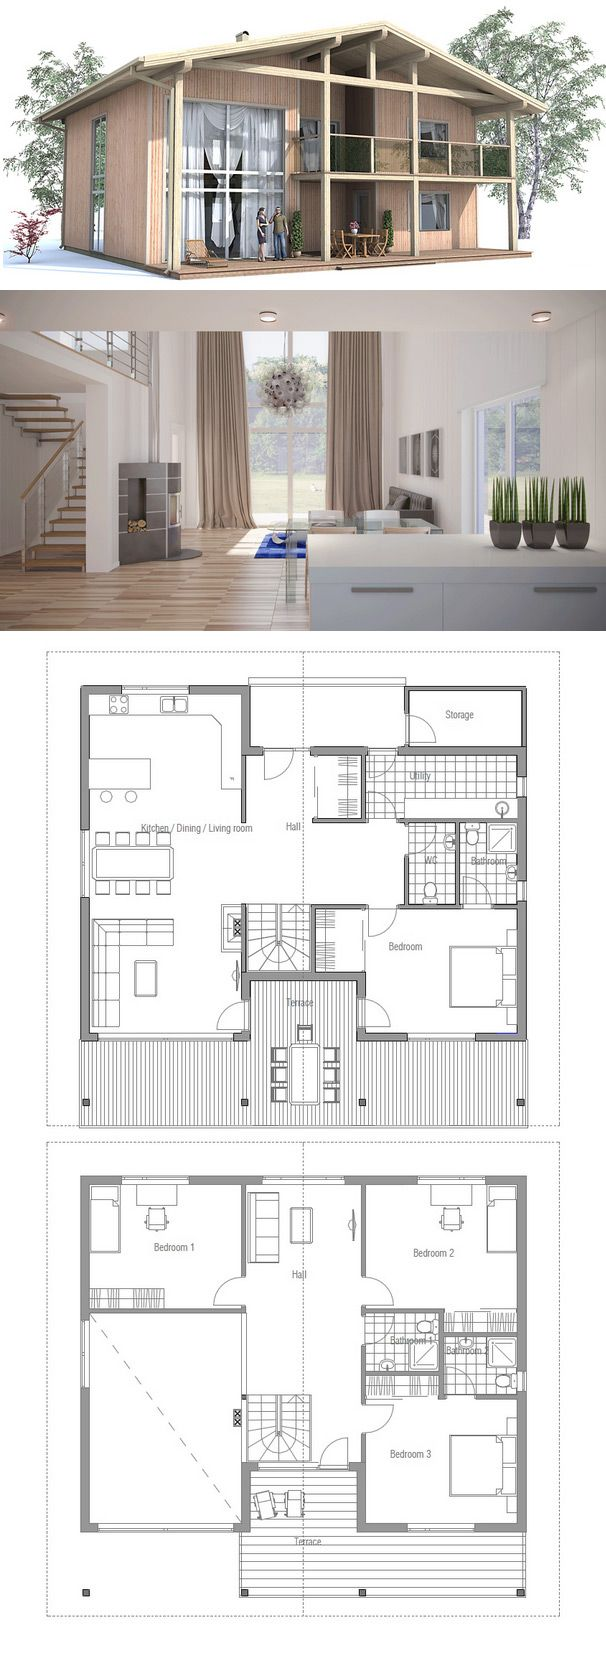 Bon House Plans U0026 Home Plans | House Plans U0026 House Designs Photo